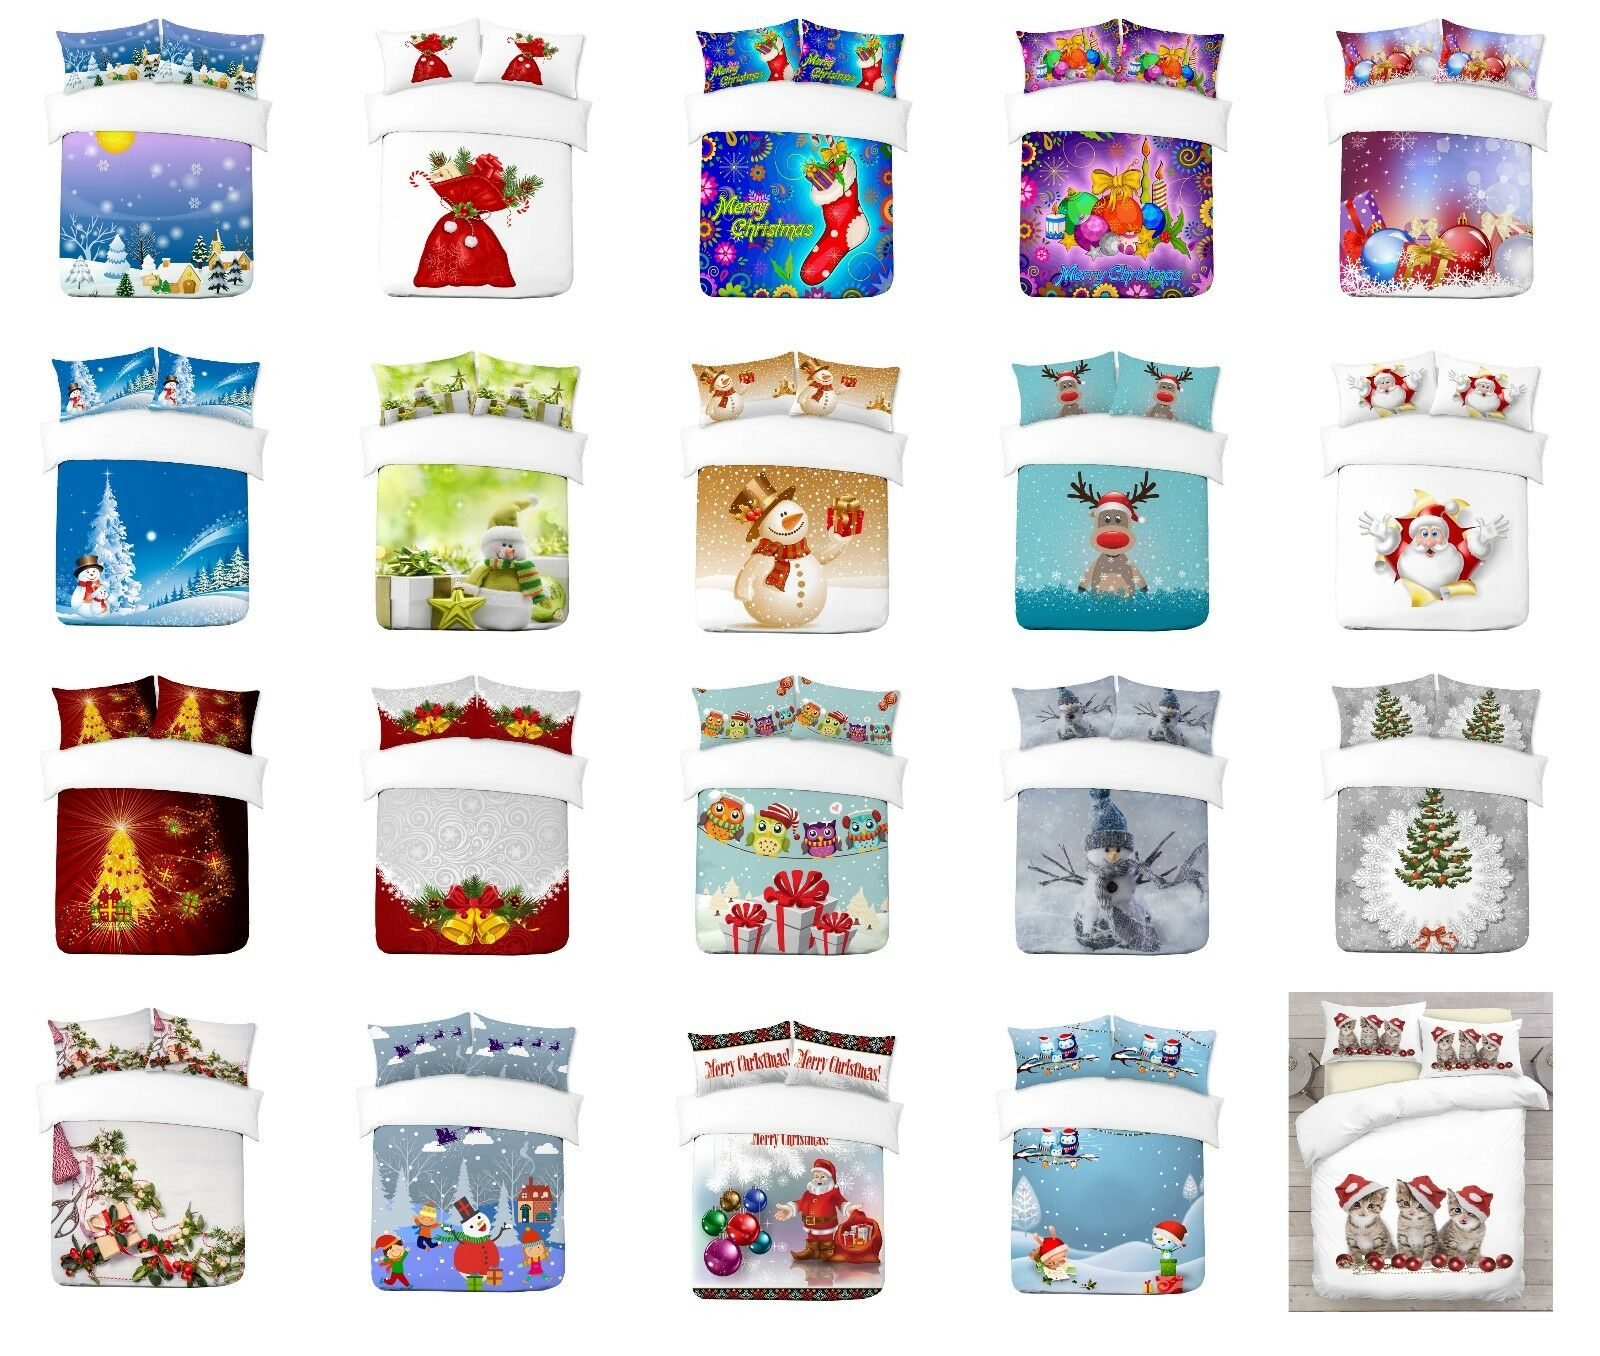 UK Made 3D Christmas Design Digital Photo Drucken Duvet Quilt Startseite or Blanket